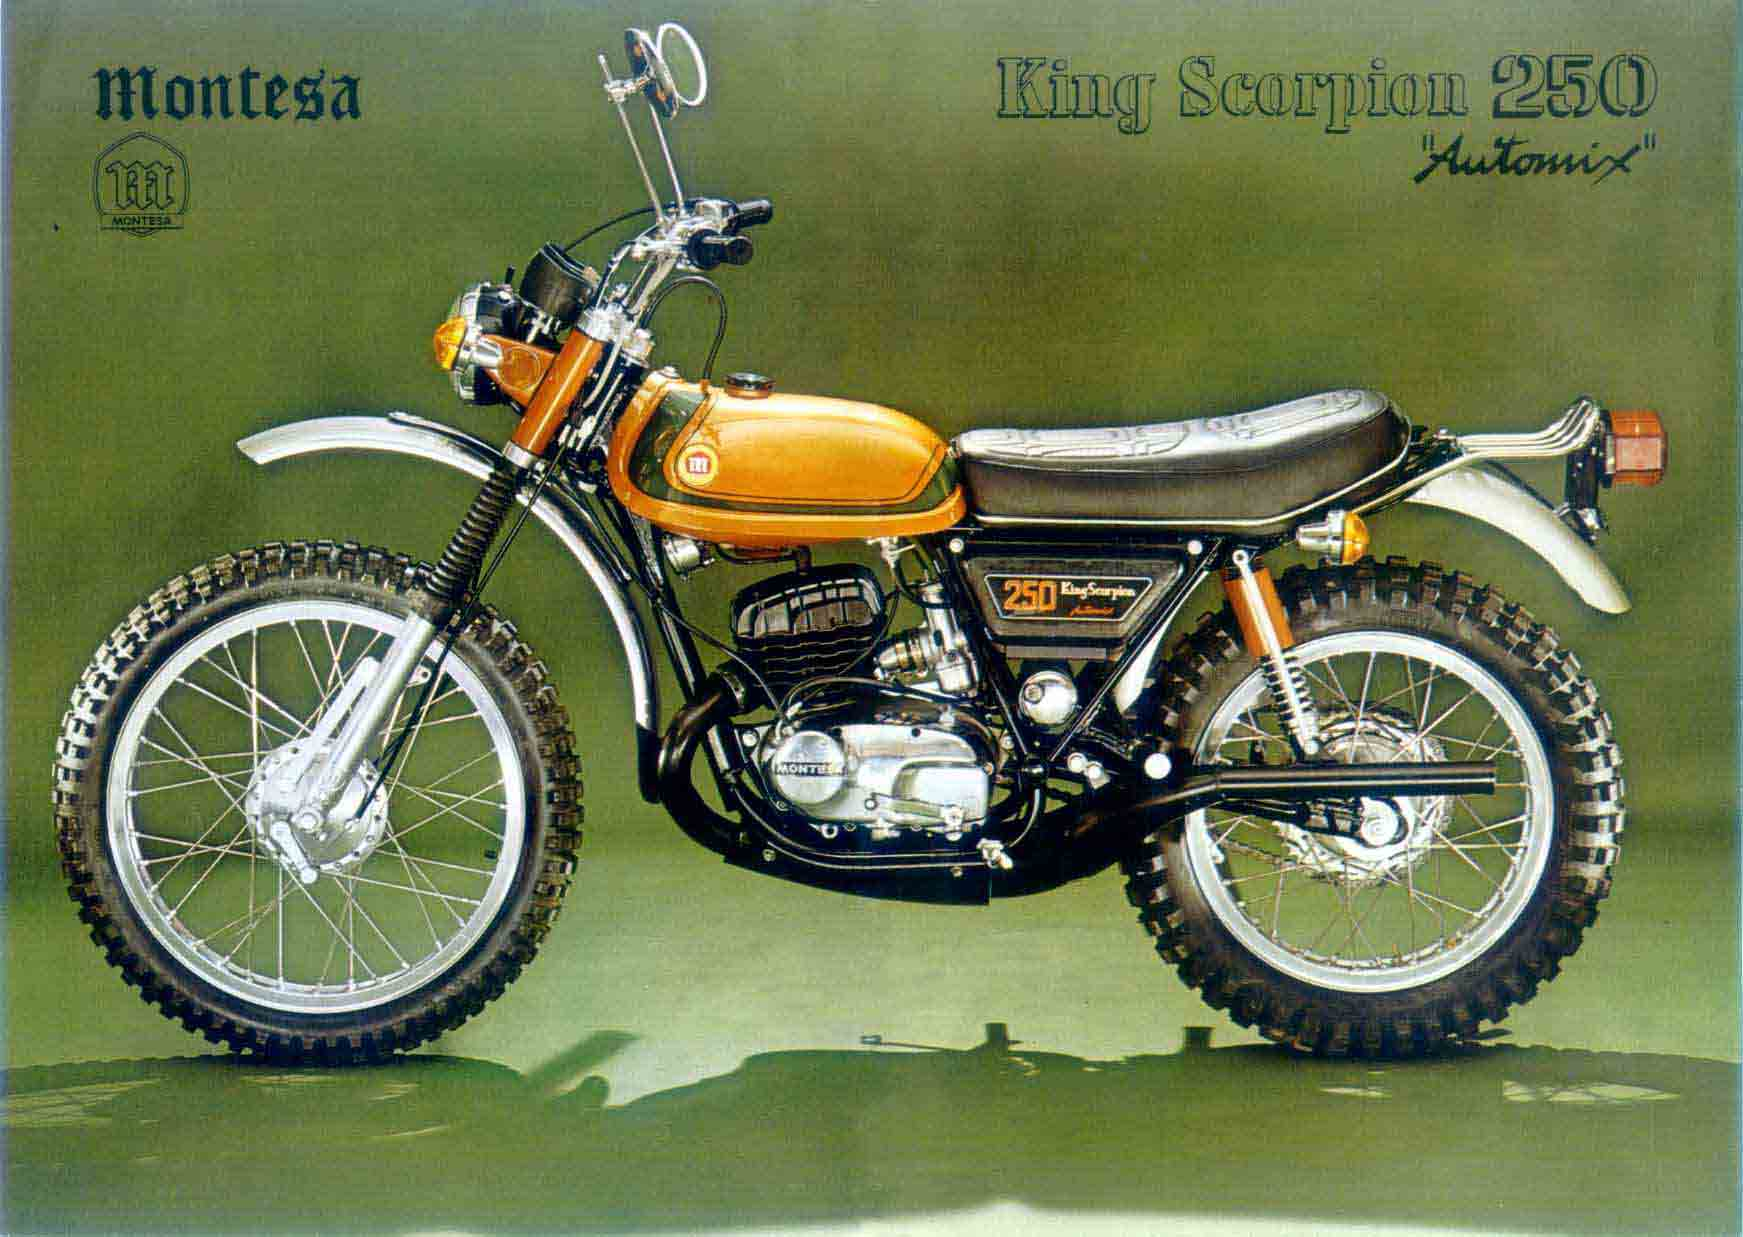 Montesa 250 King Scorpion 1975 images #105717